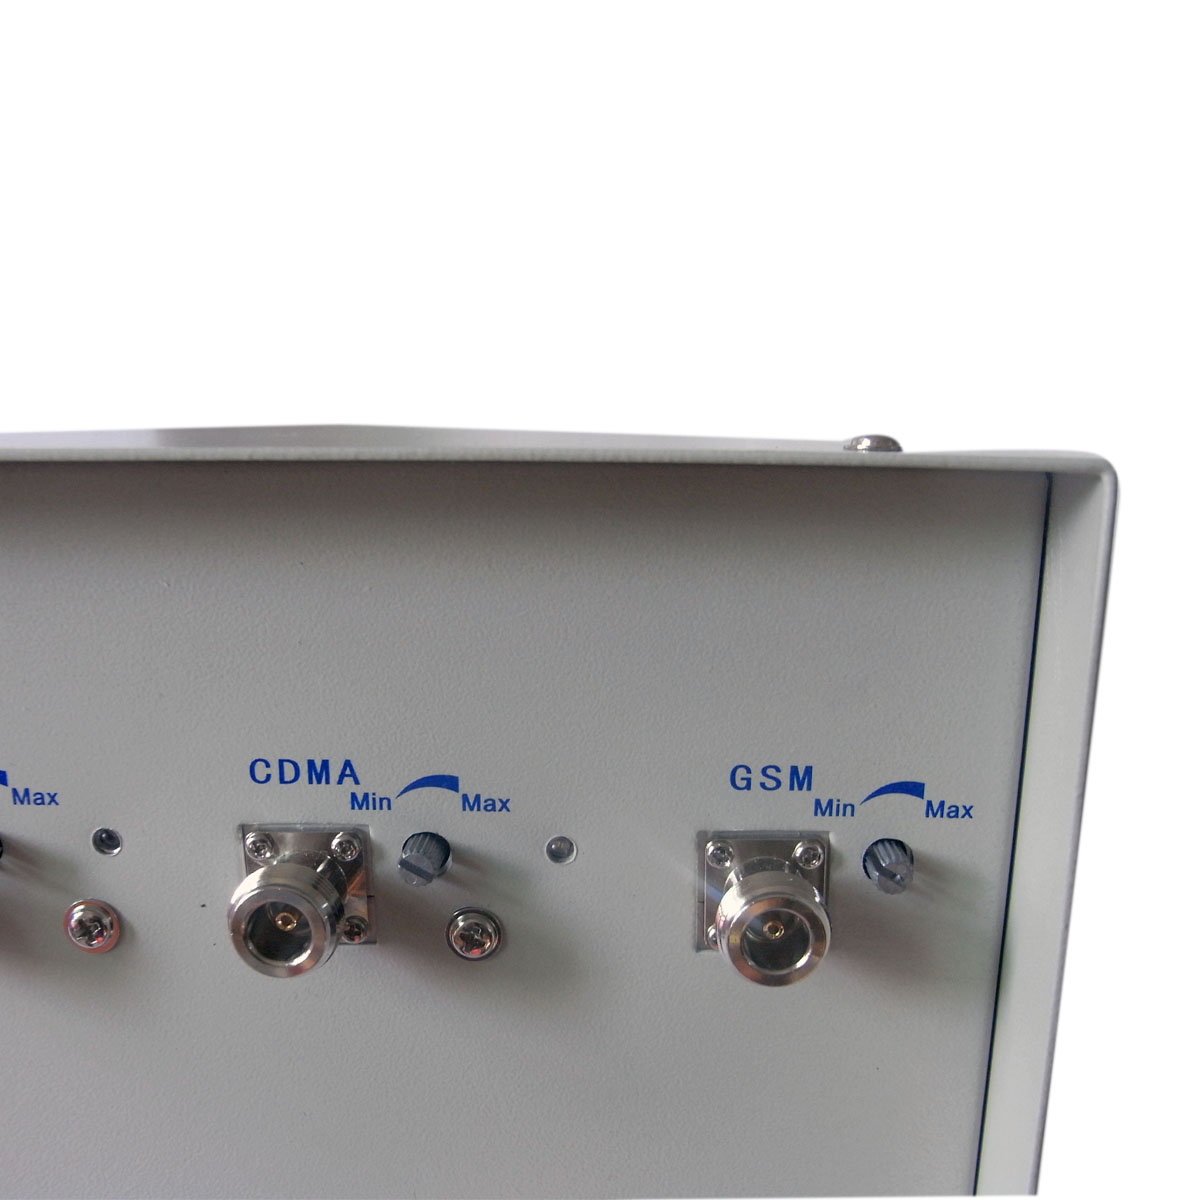 Gps signal jammer blocker maryland - High Power 3G 4G LTE Cell Phone Jammer with Remote Control